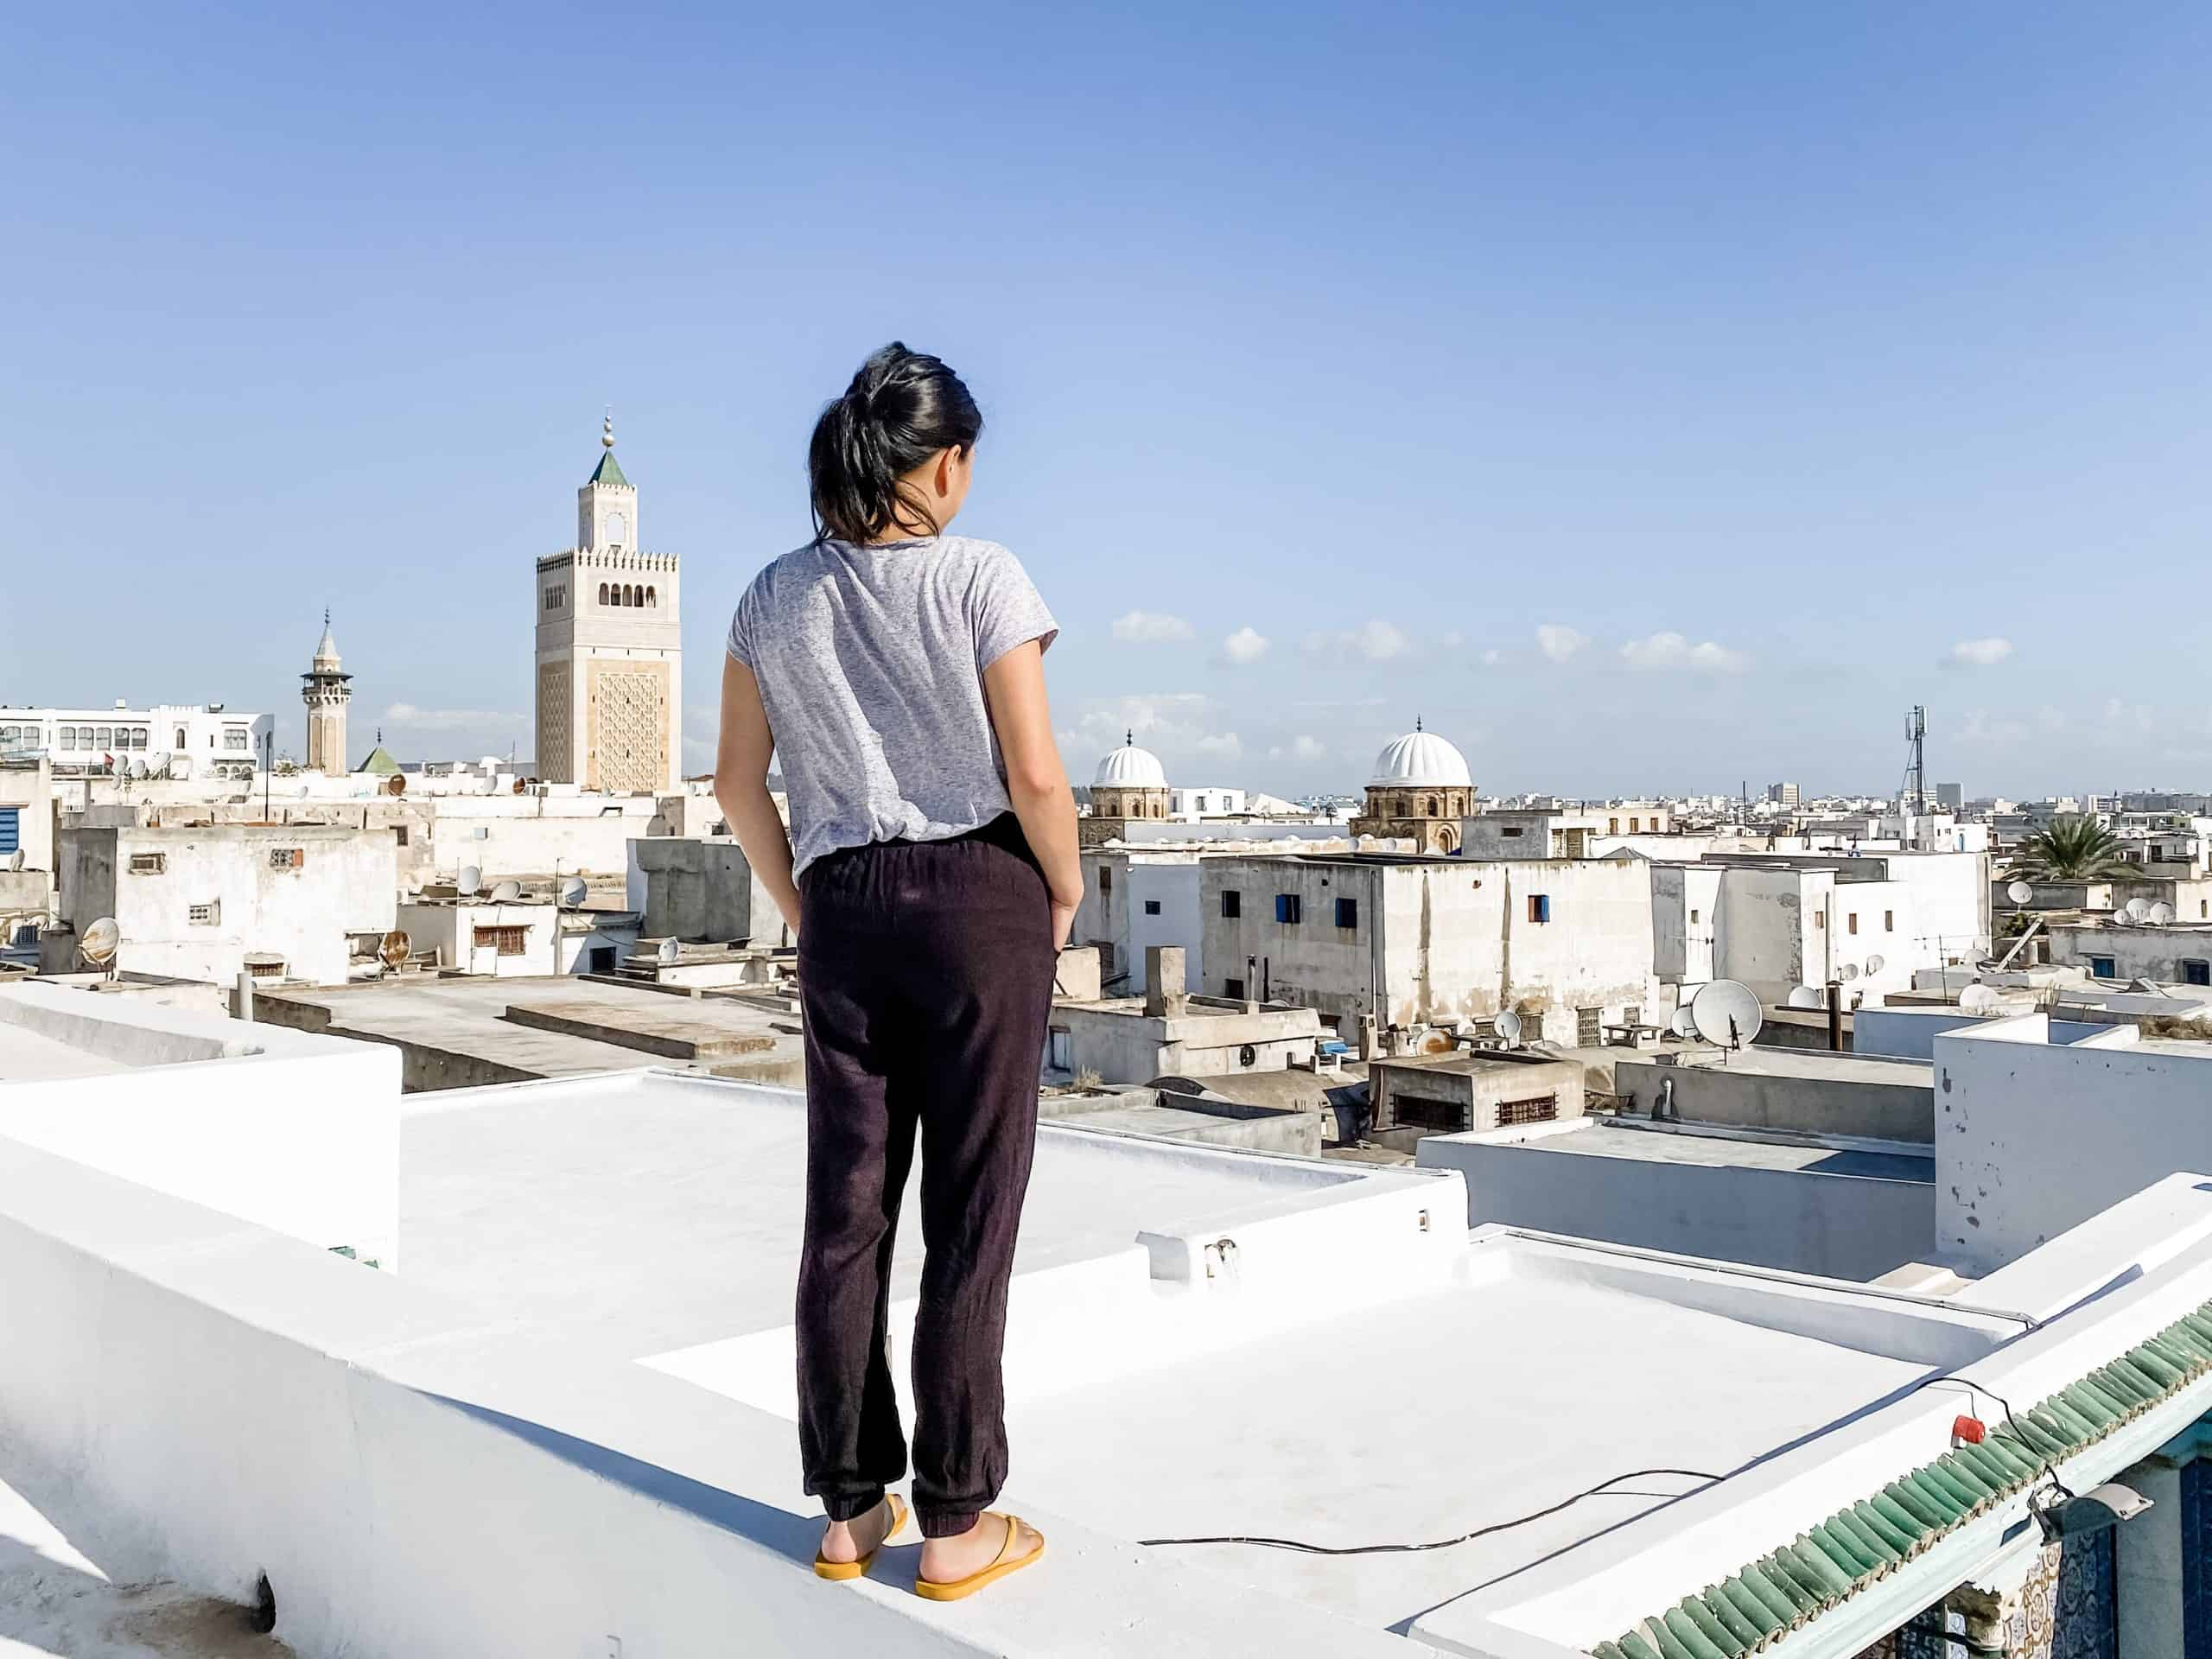 Looking out over Tunis | My Travel Monkey